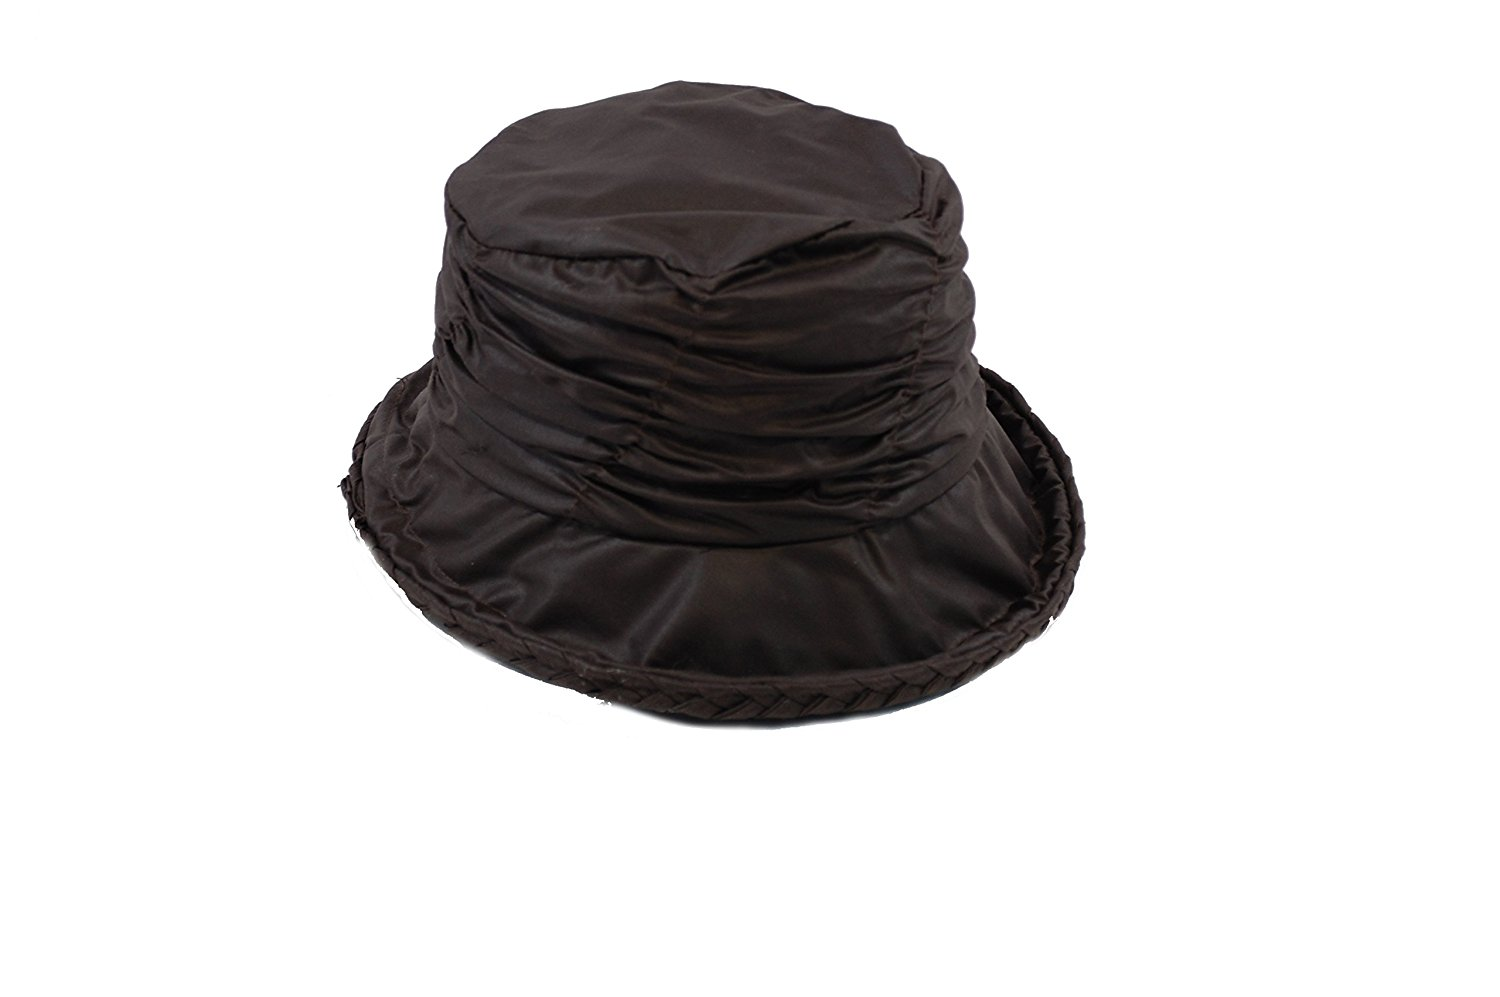 8651c6a8b Cheap Ladies Wax Hat, find Ladies Wax Hat deals on line at Alibaba.com